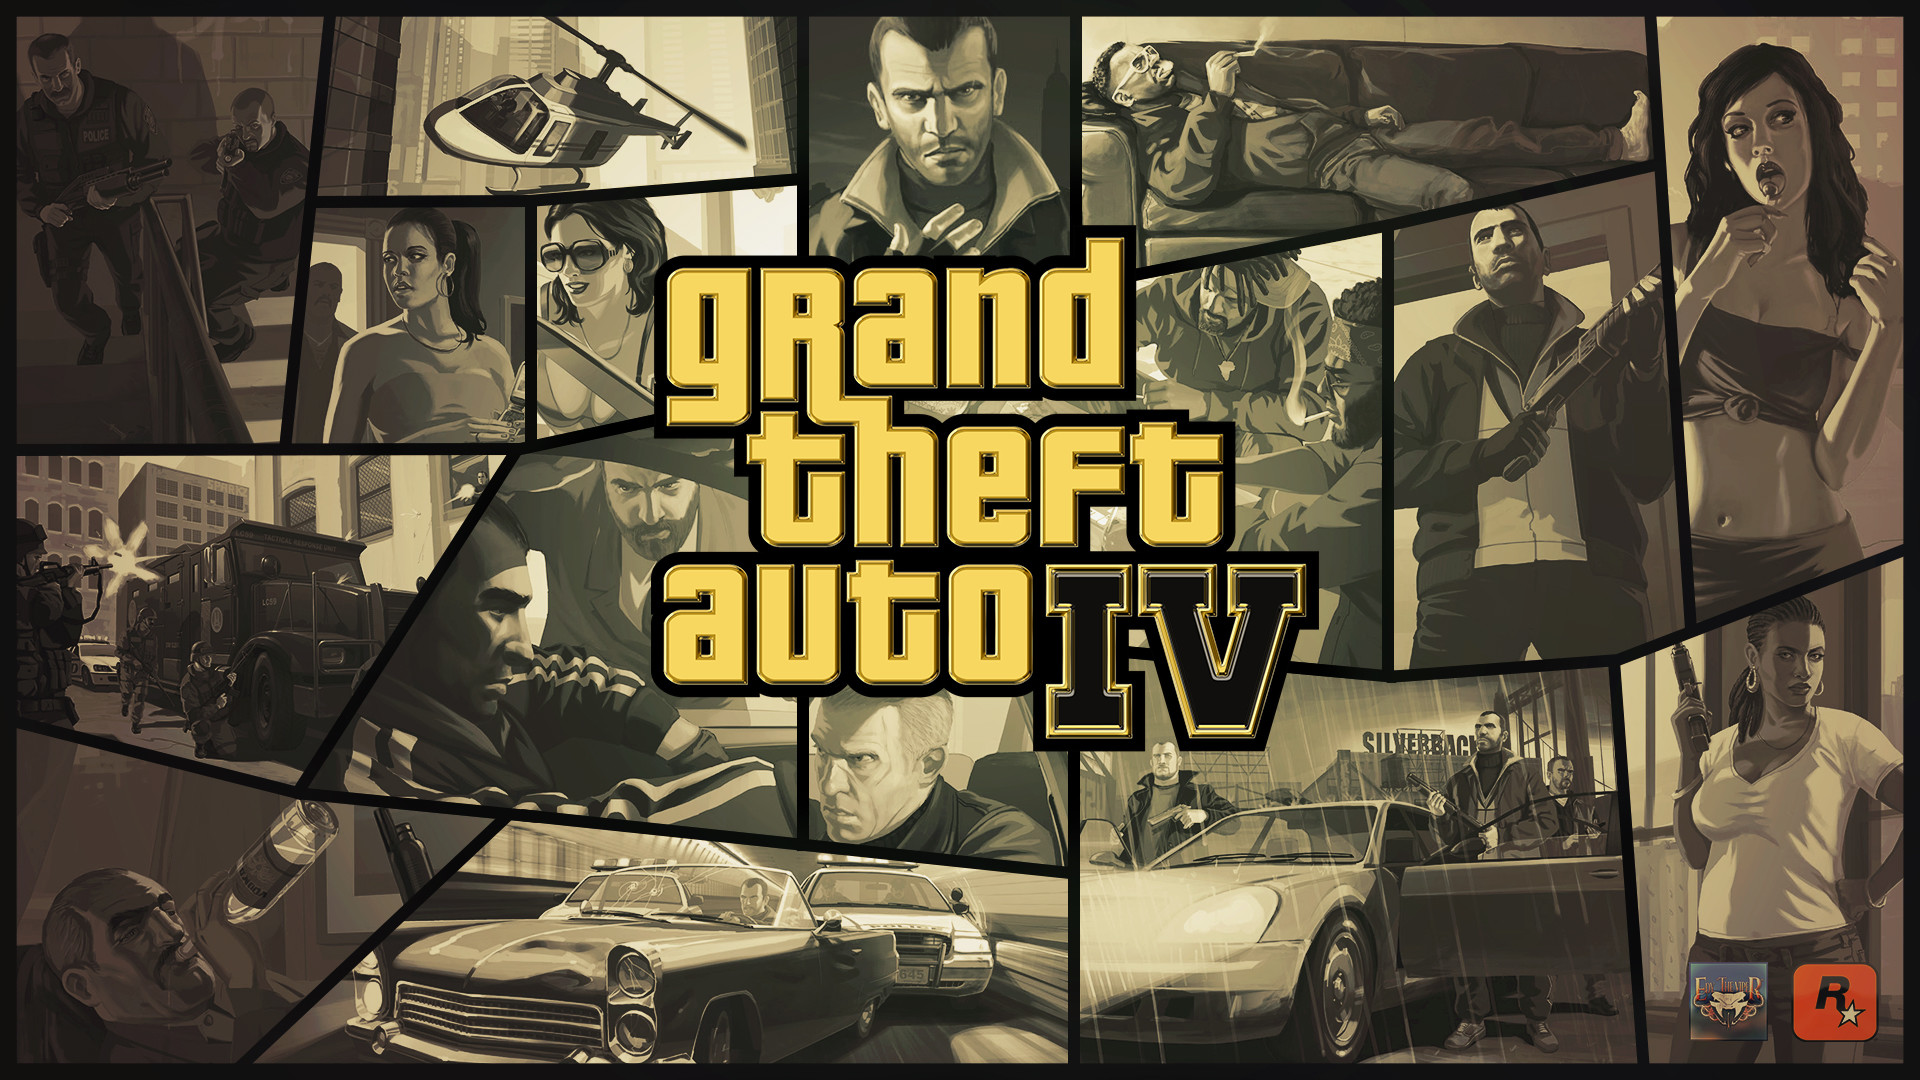 Grand Theft Auto 5 Wallpaper: GTA IV Wallpapers (73+ Images